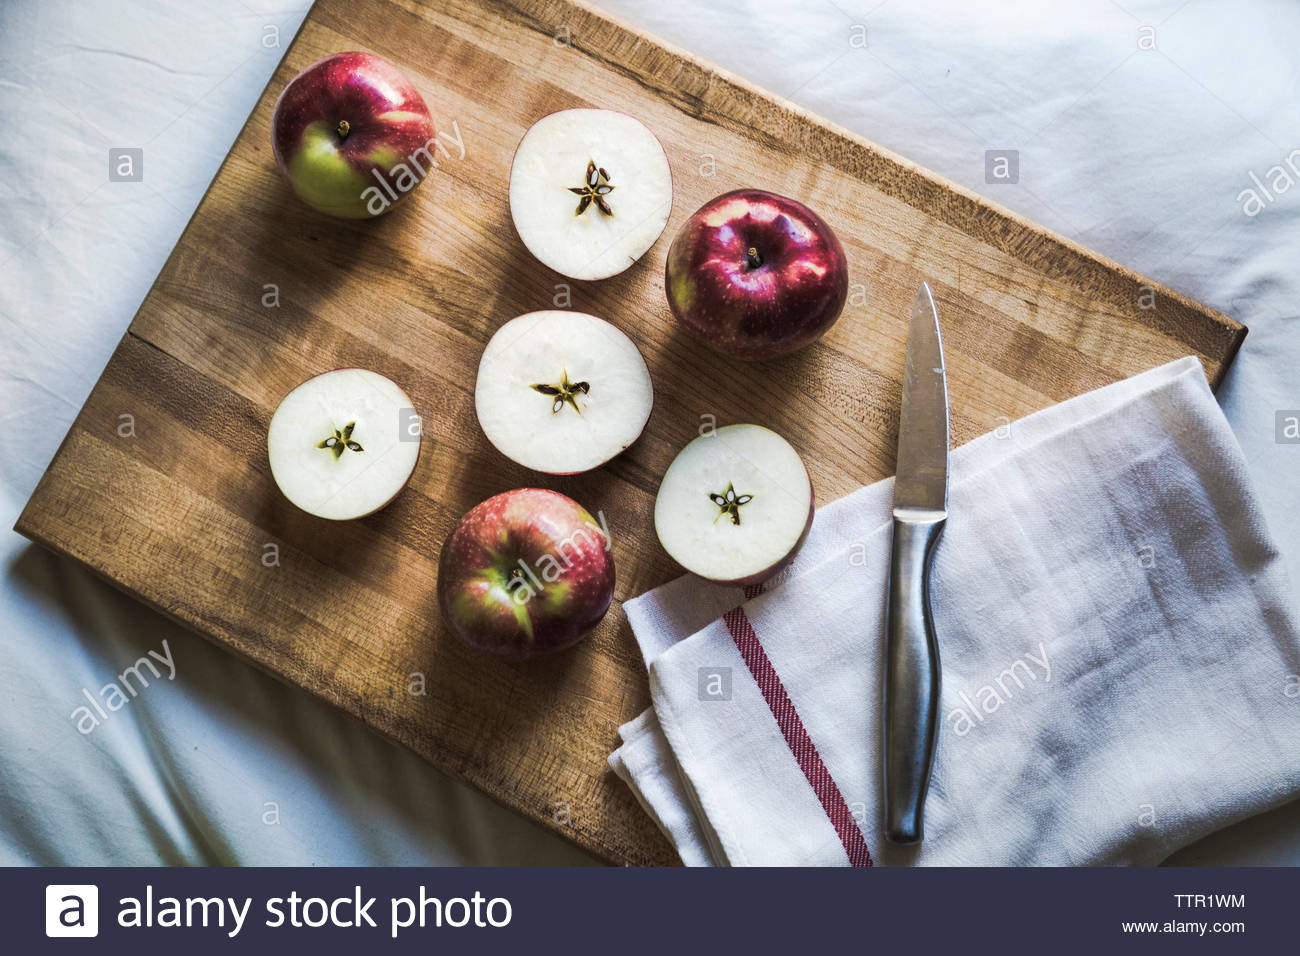 High angle view of apple with kitchen knife and napkin on cutting board - Stock Image